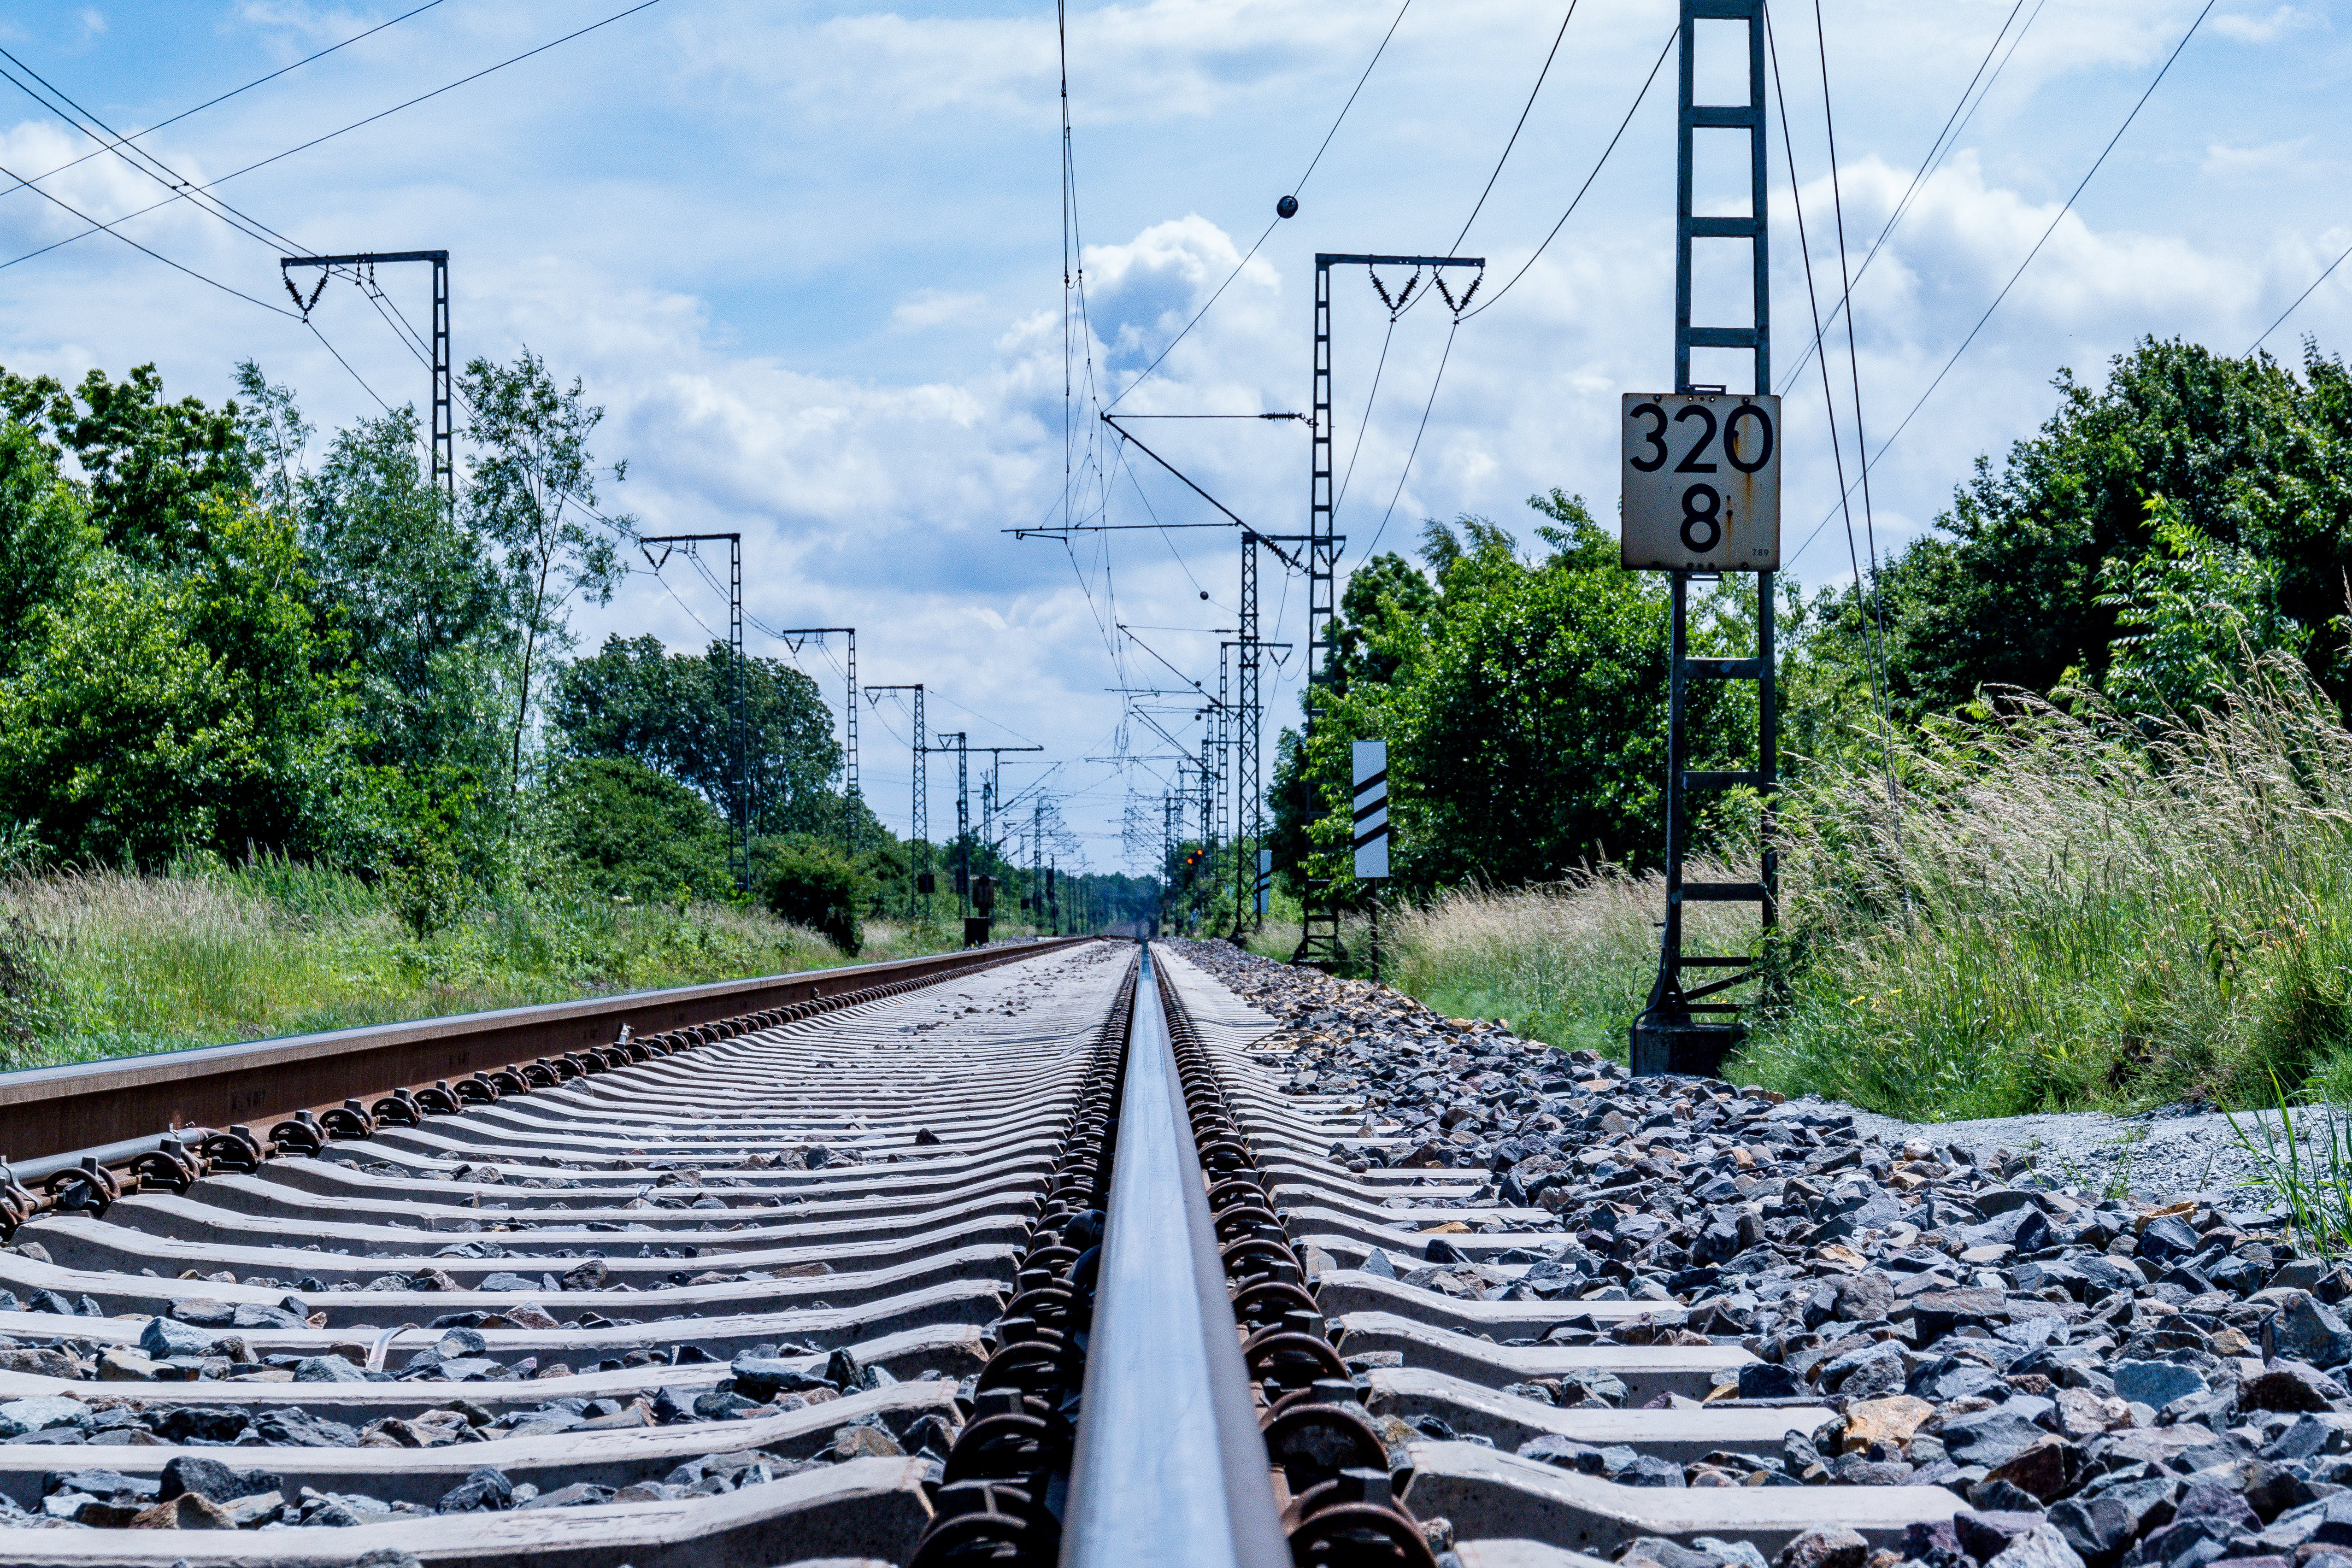 Clear Photo of Train Rail during Daytime